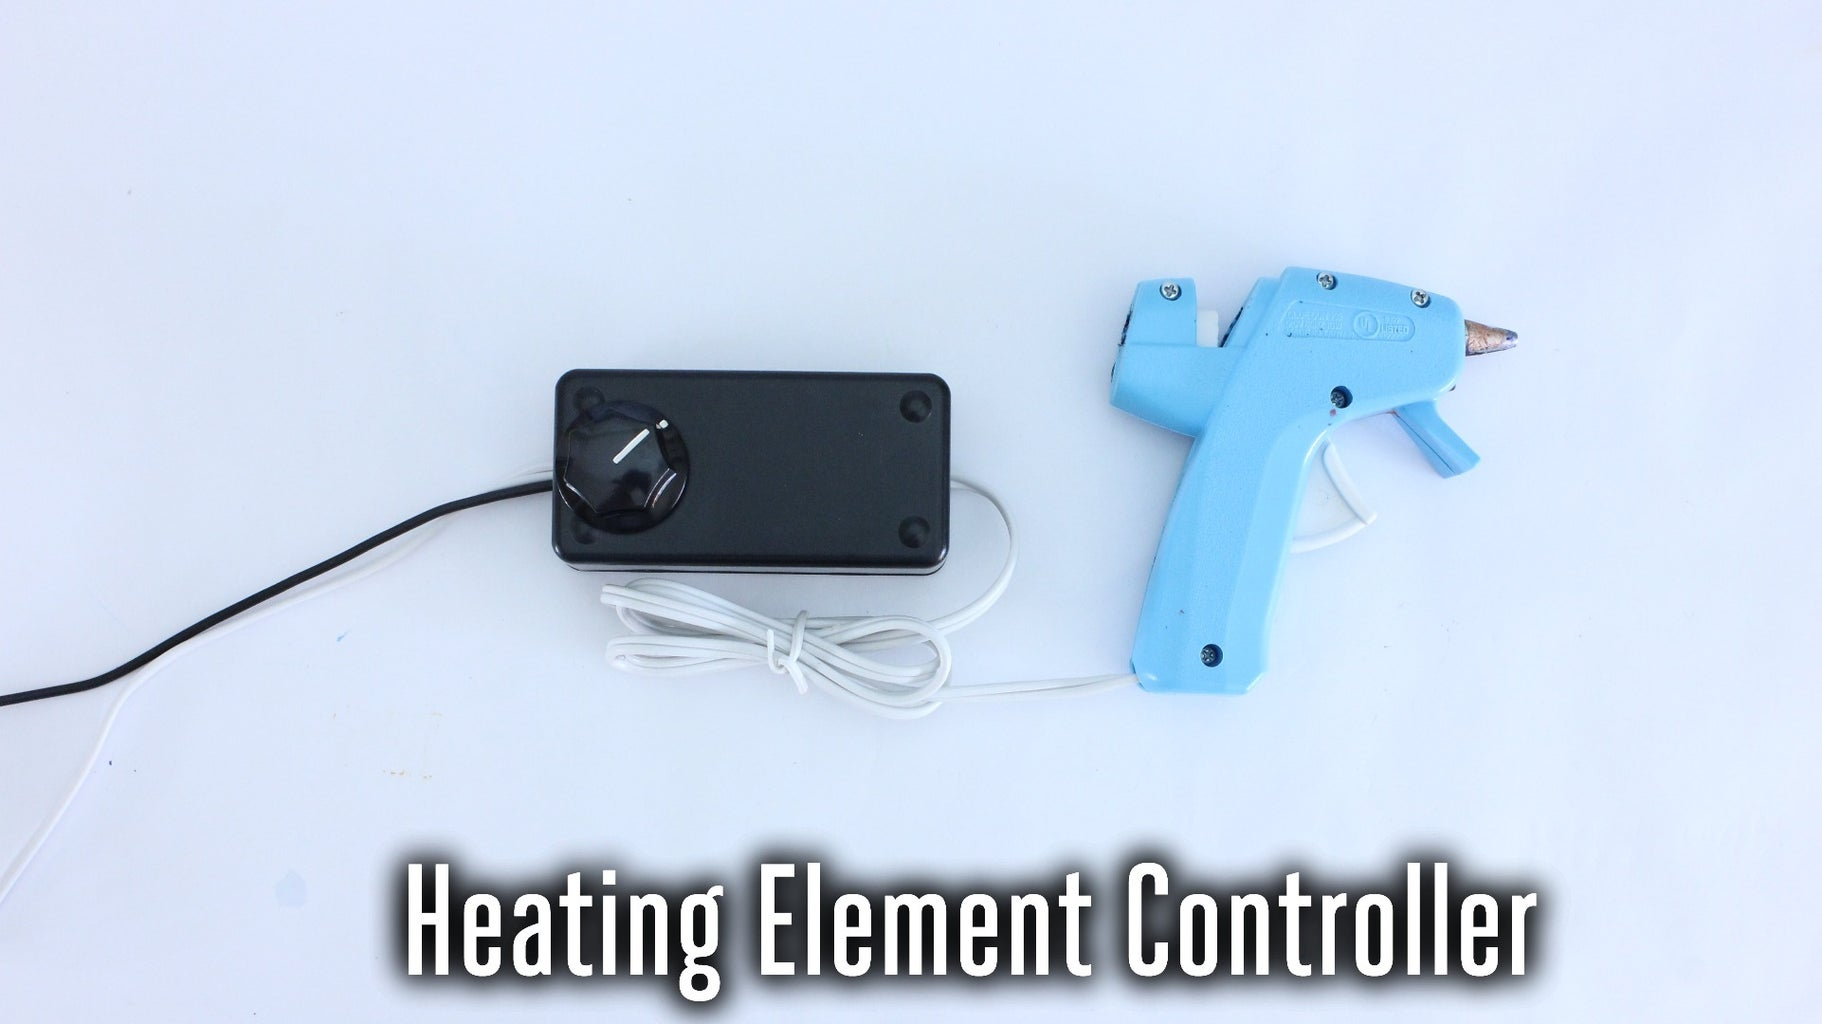 Adjustable Temperature Controller for Heating Elements